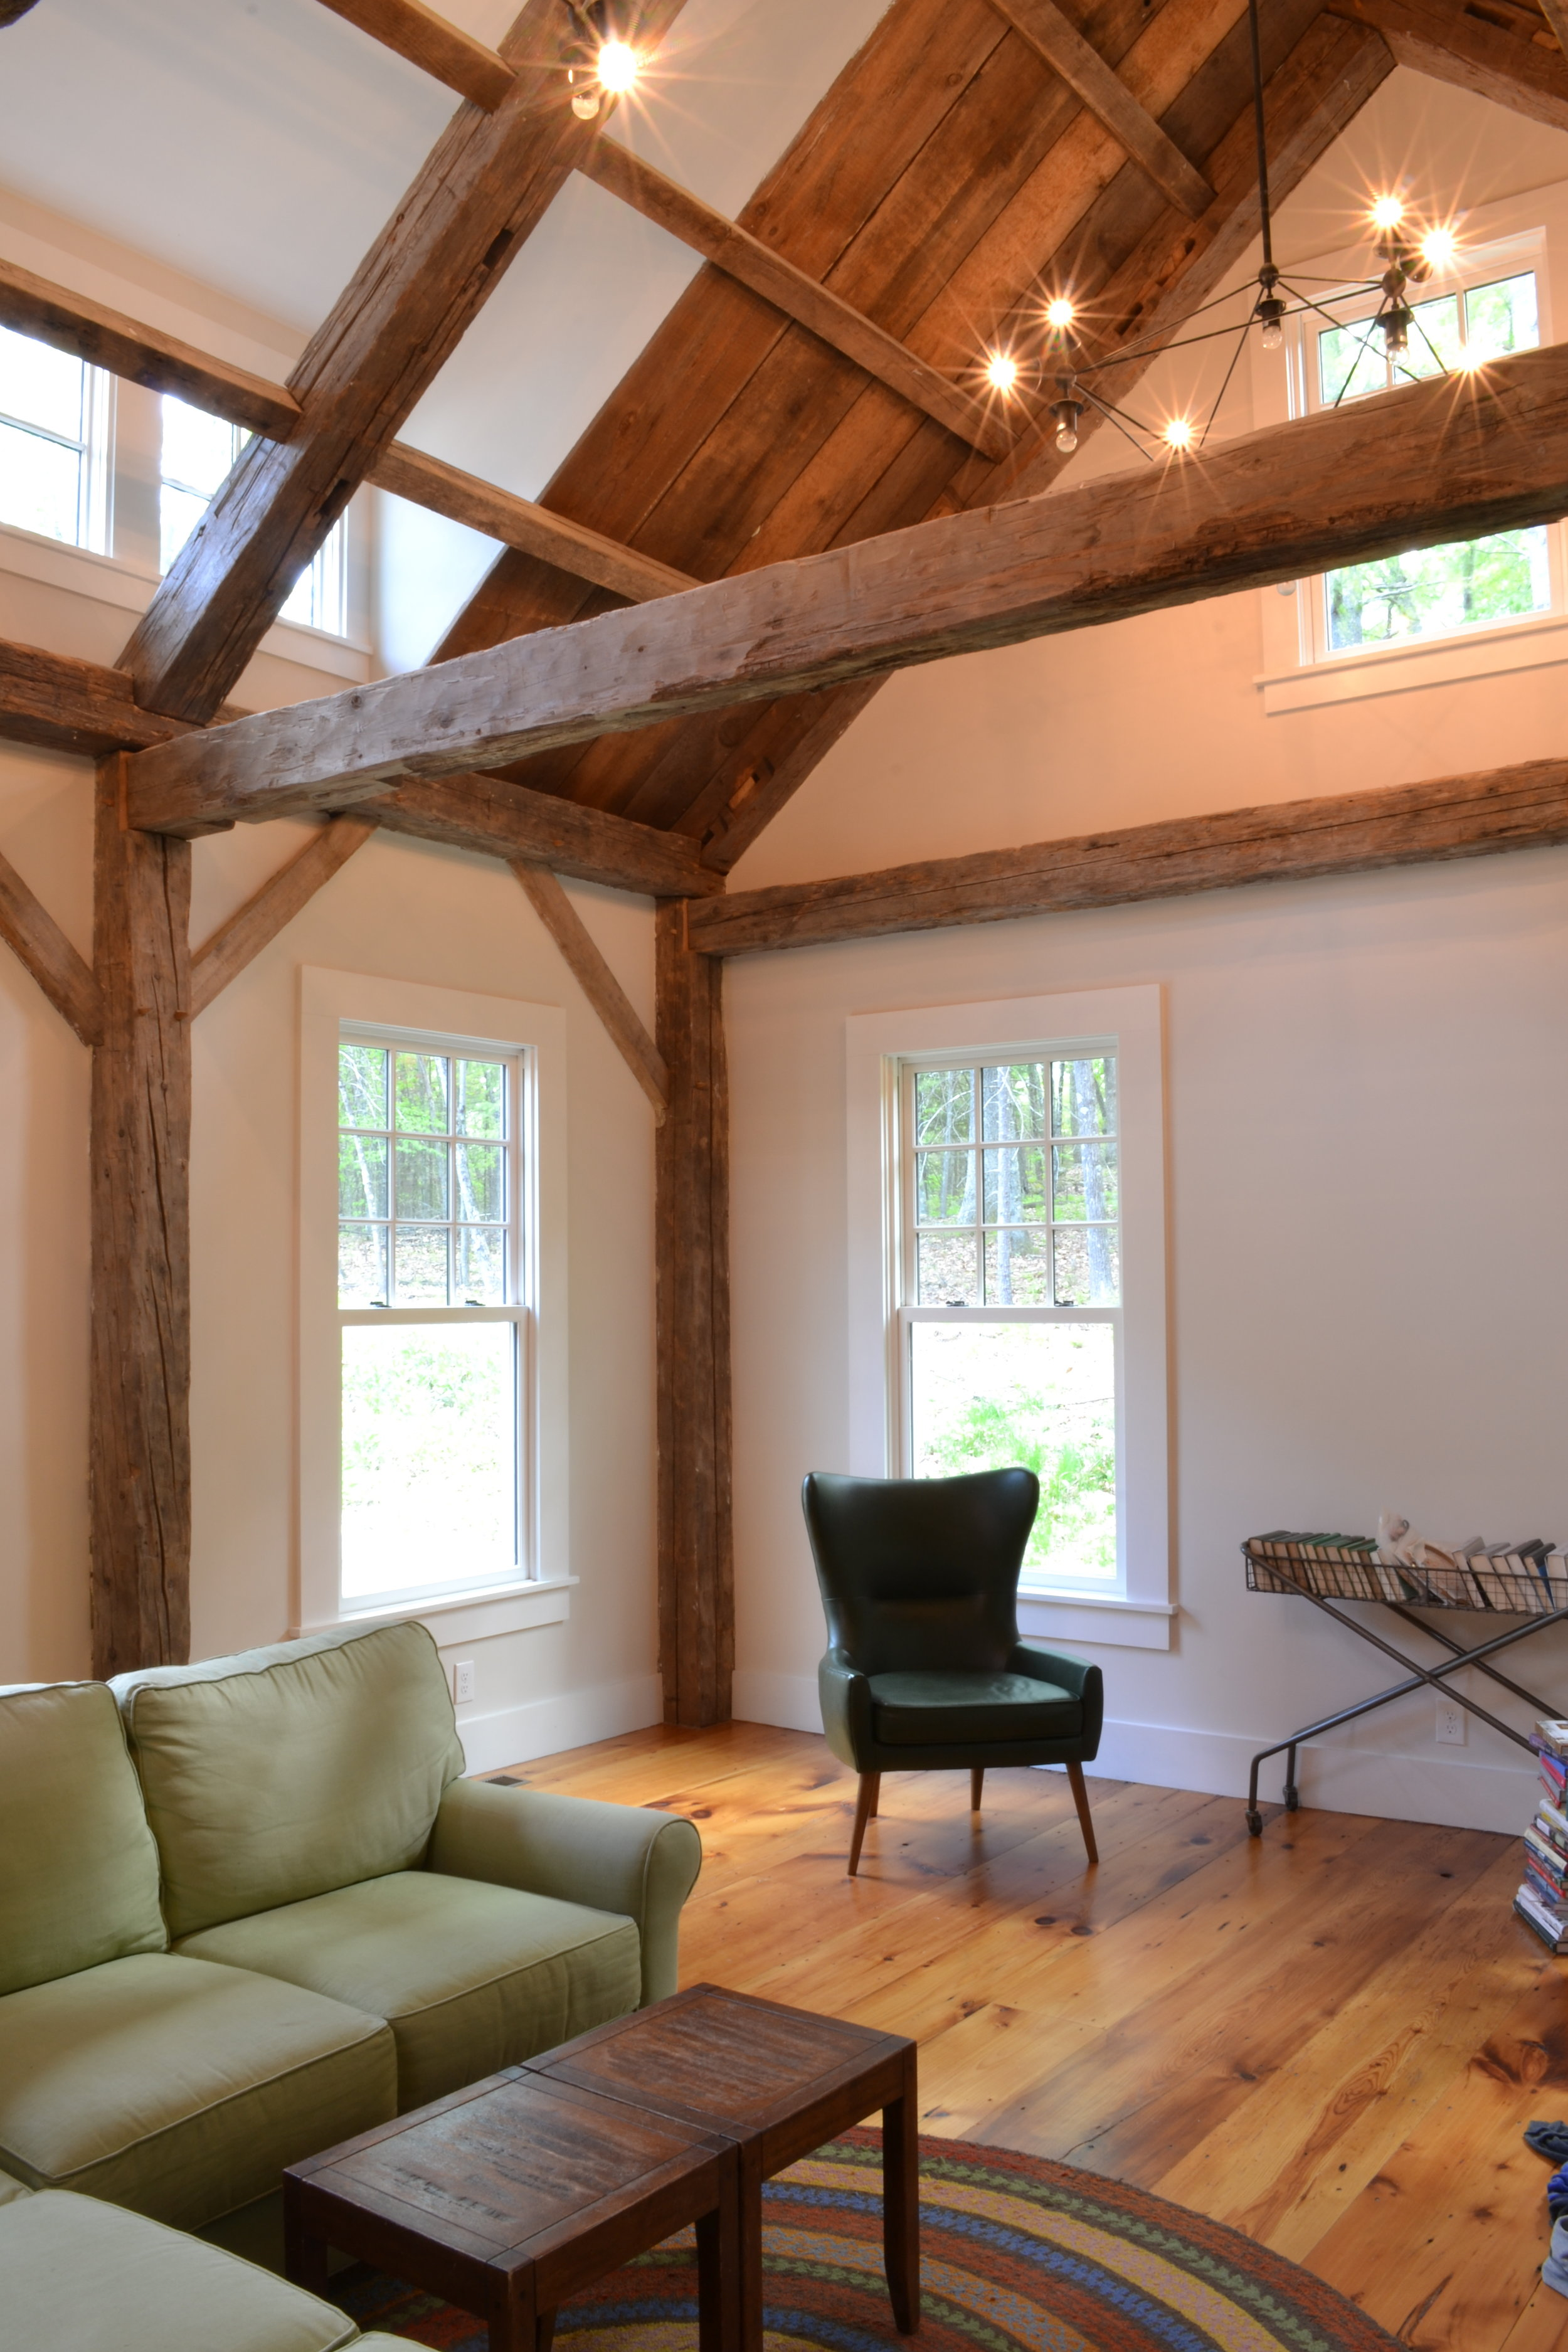 Historic Farm House Salvaged Barn Wood | Dickinson Architects, LLC | Acton, MA